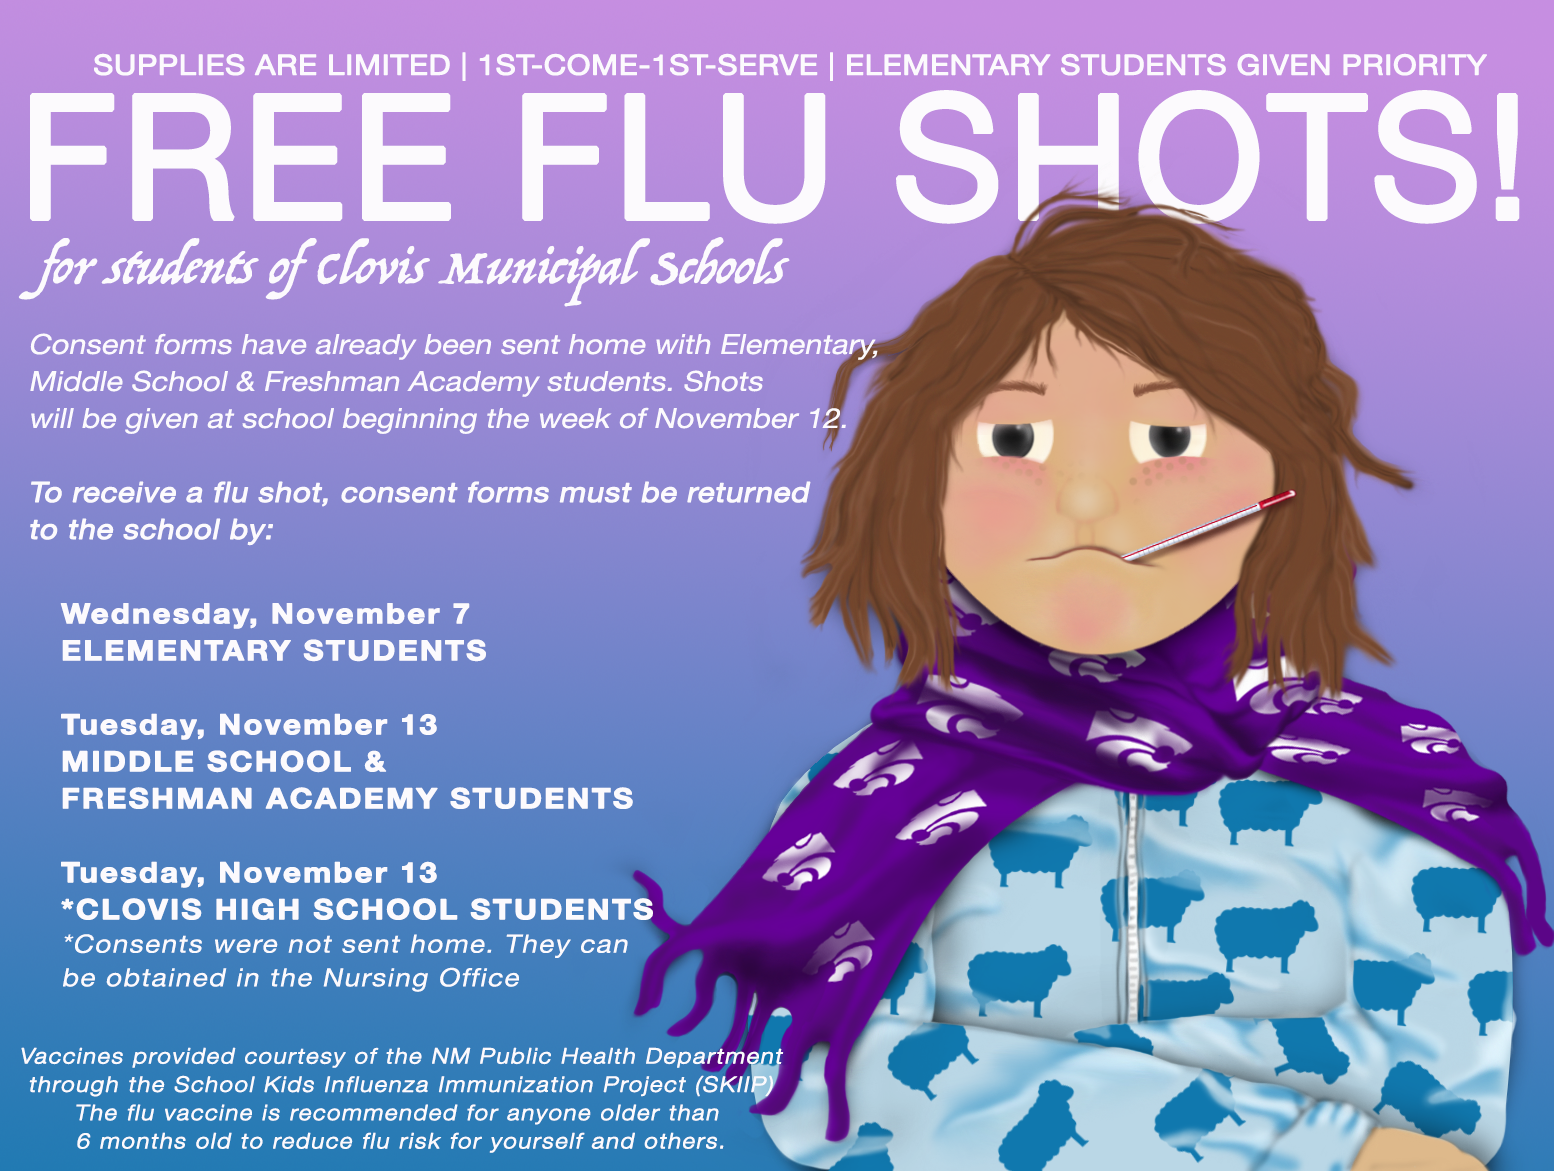 Image of text announcing free flu shots for students